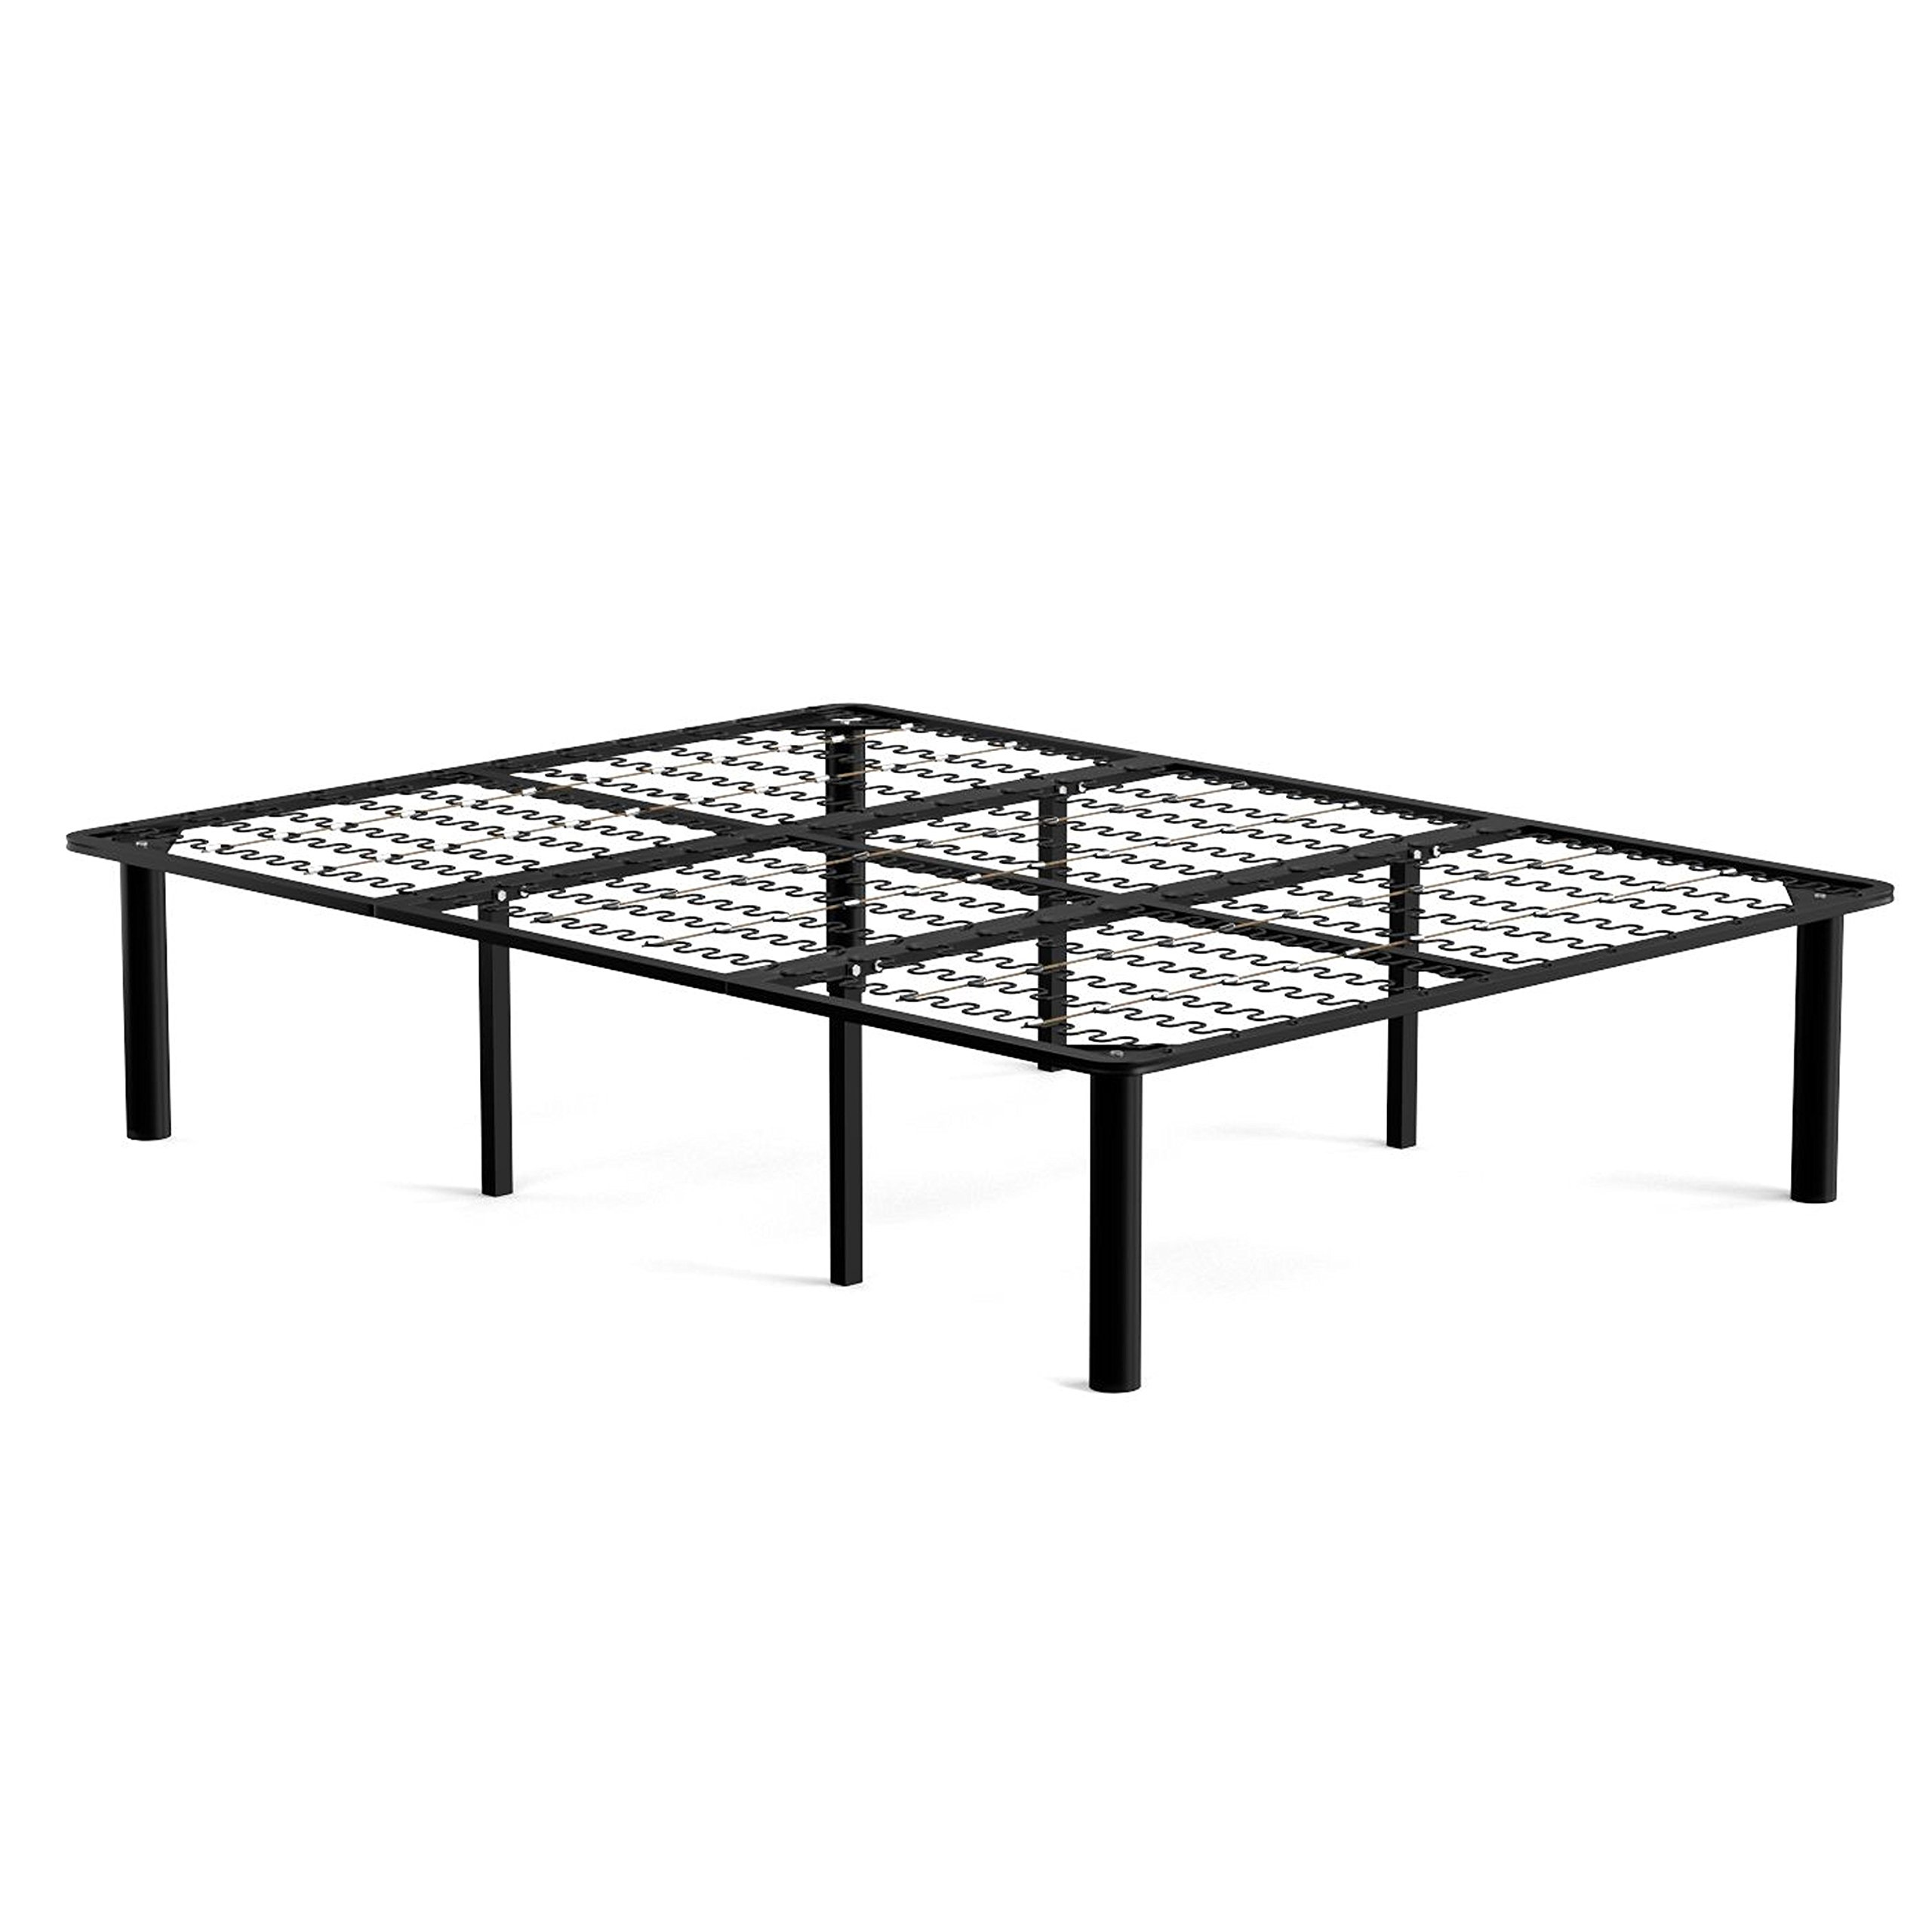 handy living 2 in 1 bed frame and box spring combination queen 810490010706 ebay. Black Bedroom Furniture Sets. Home Design Ideas